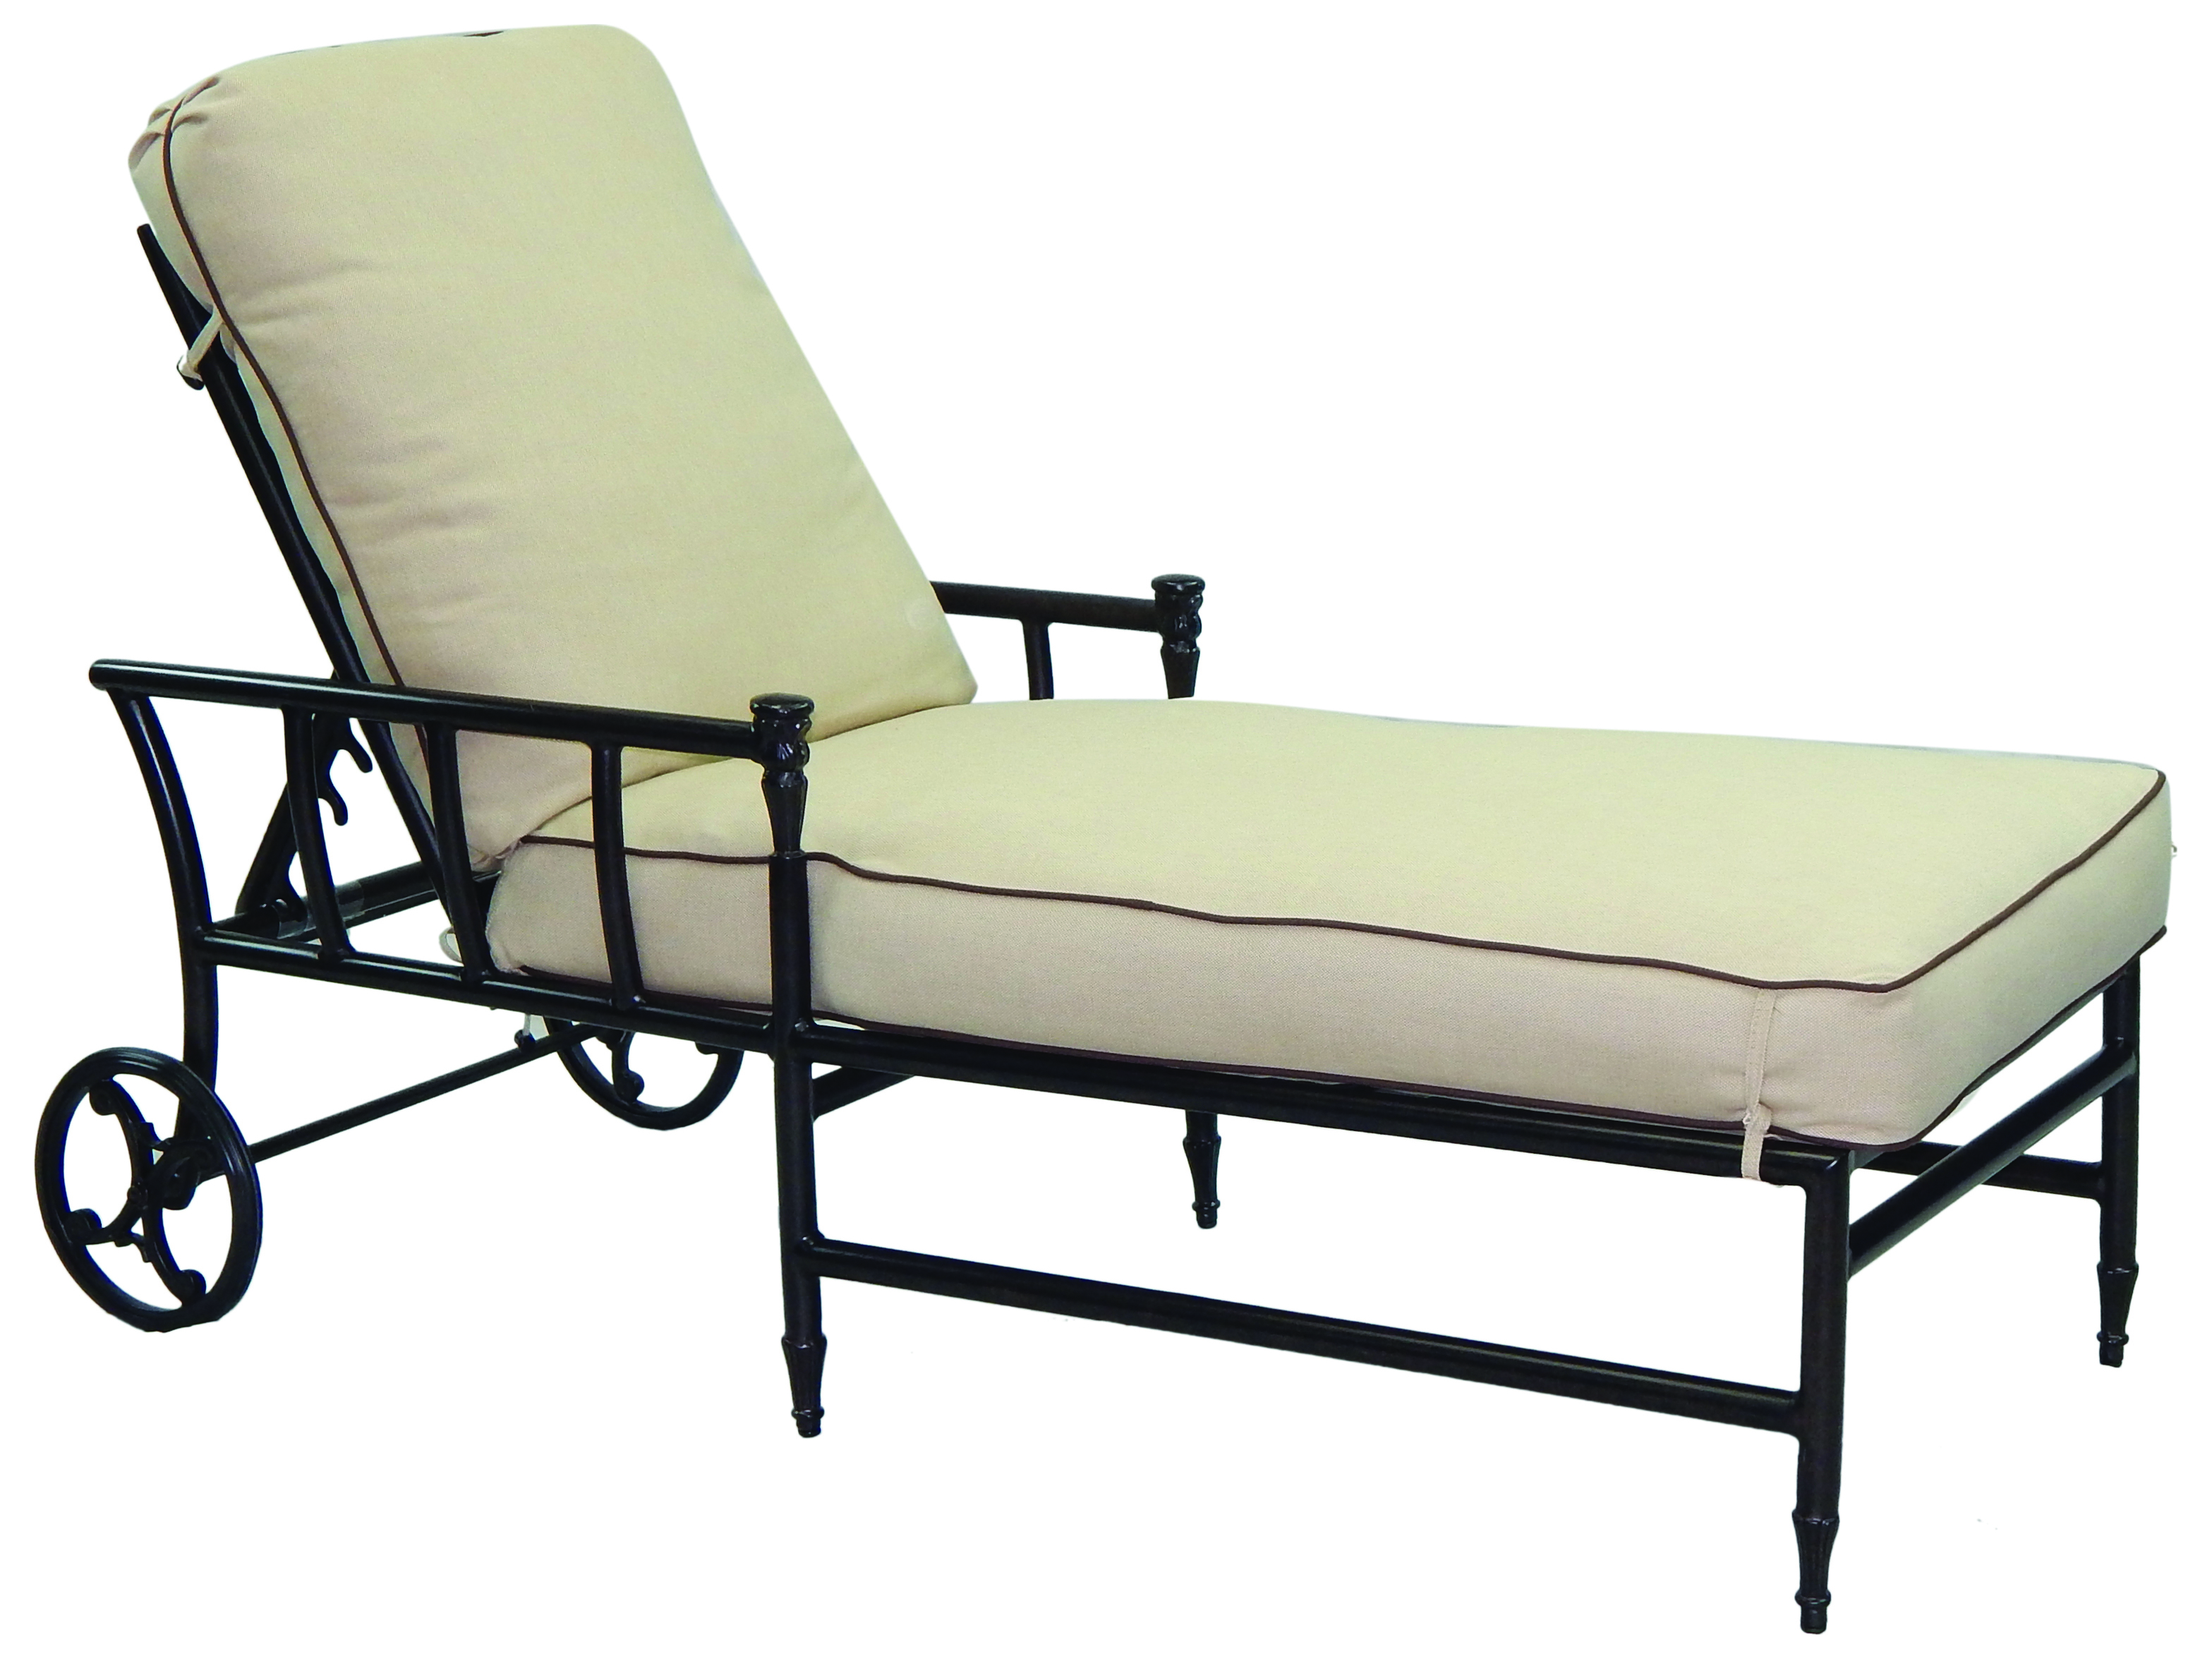 Castelle provence cushion cast aluminum adjustable chaise for Chaise lounge aluminum